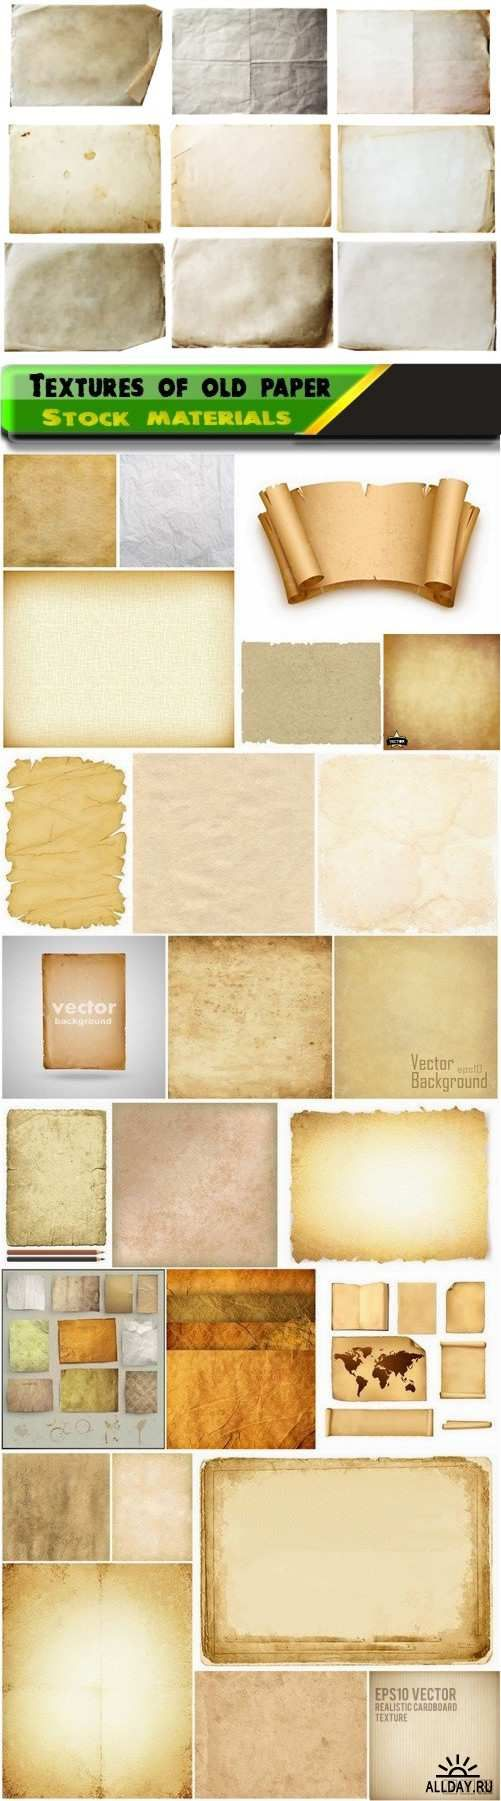 Старая бумага / Backgrounds and textures of old paper 25xEPS